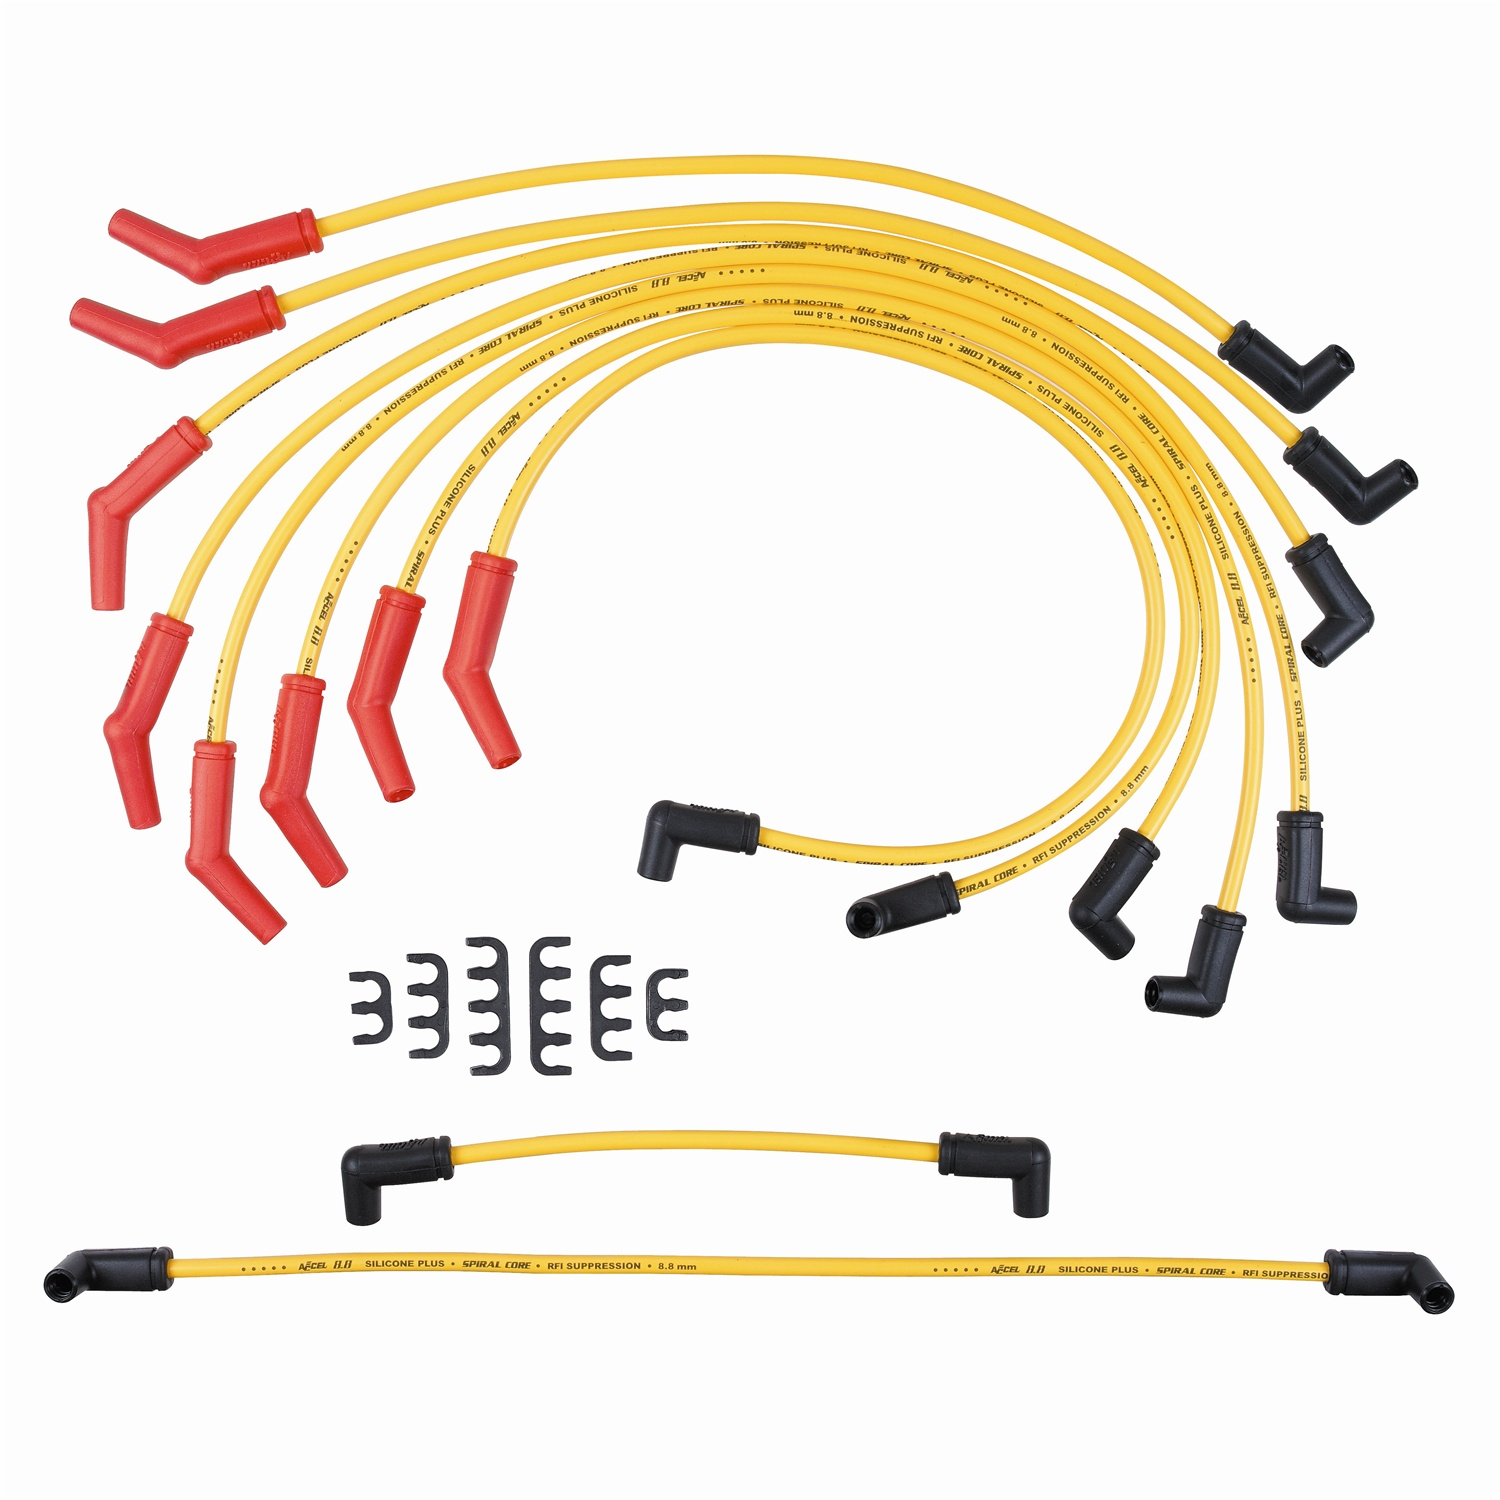 Accel 8854 Custom Fit 8.8mm Spark Plug Wire Sets at ATKHP.com